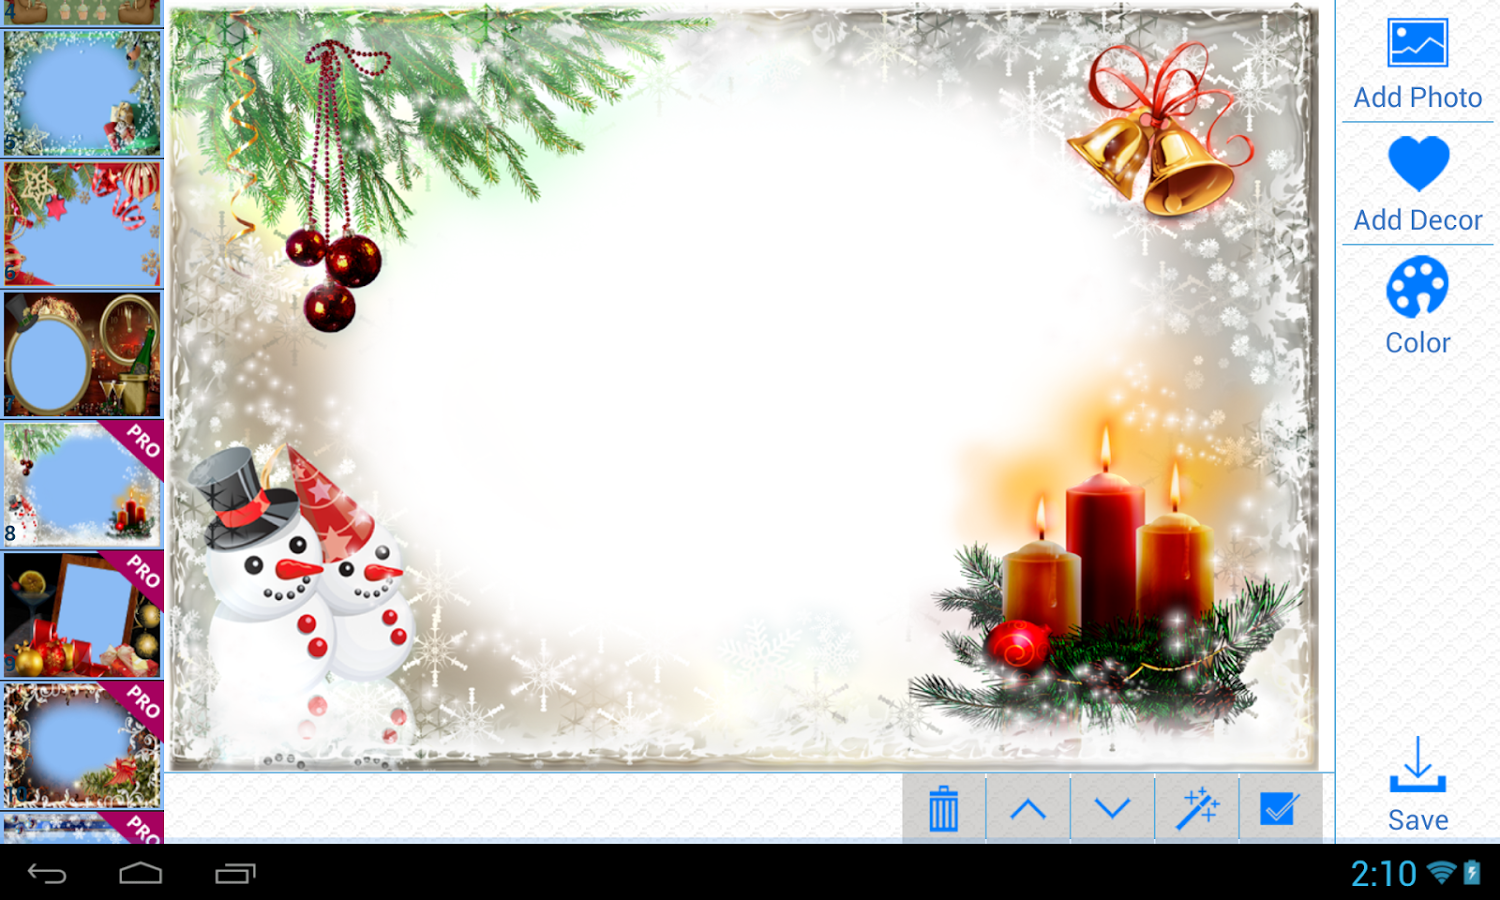 Christmas Photo Frames v2.2.1 .apk File